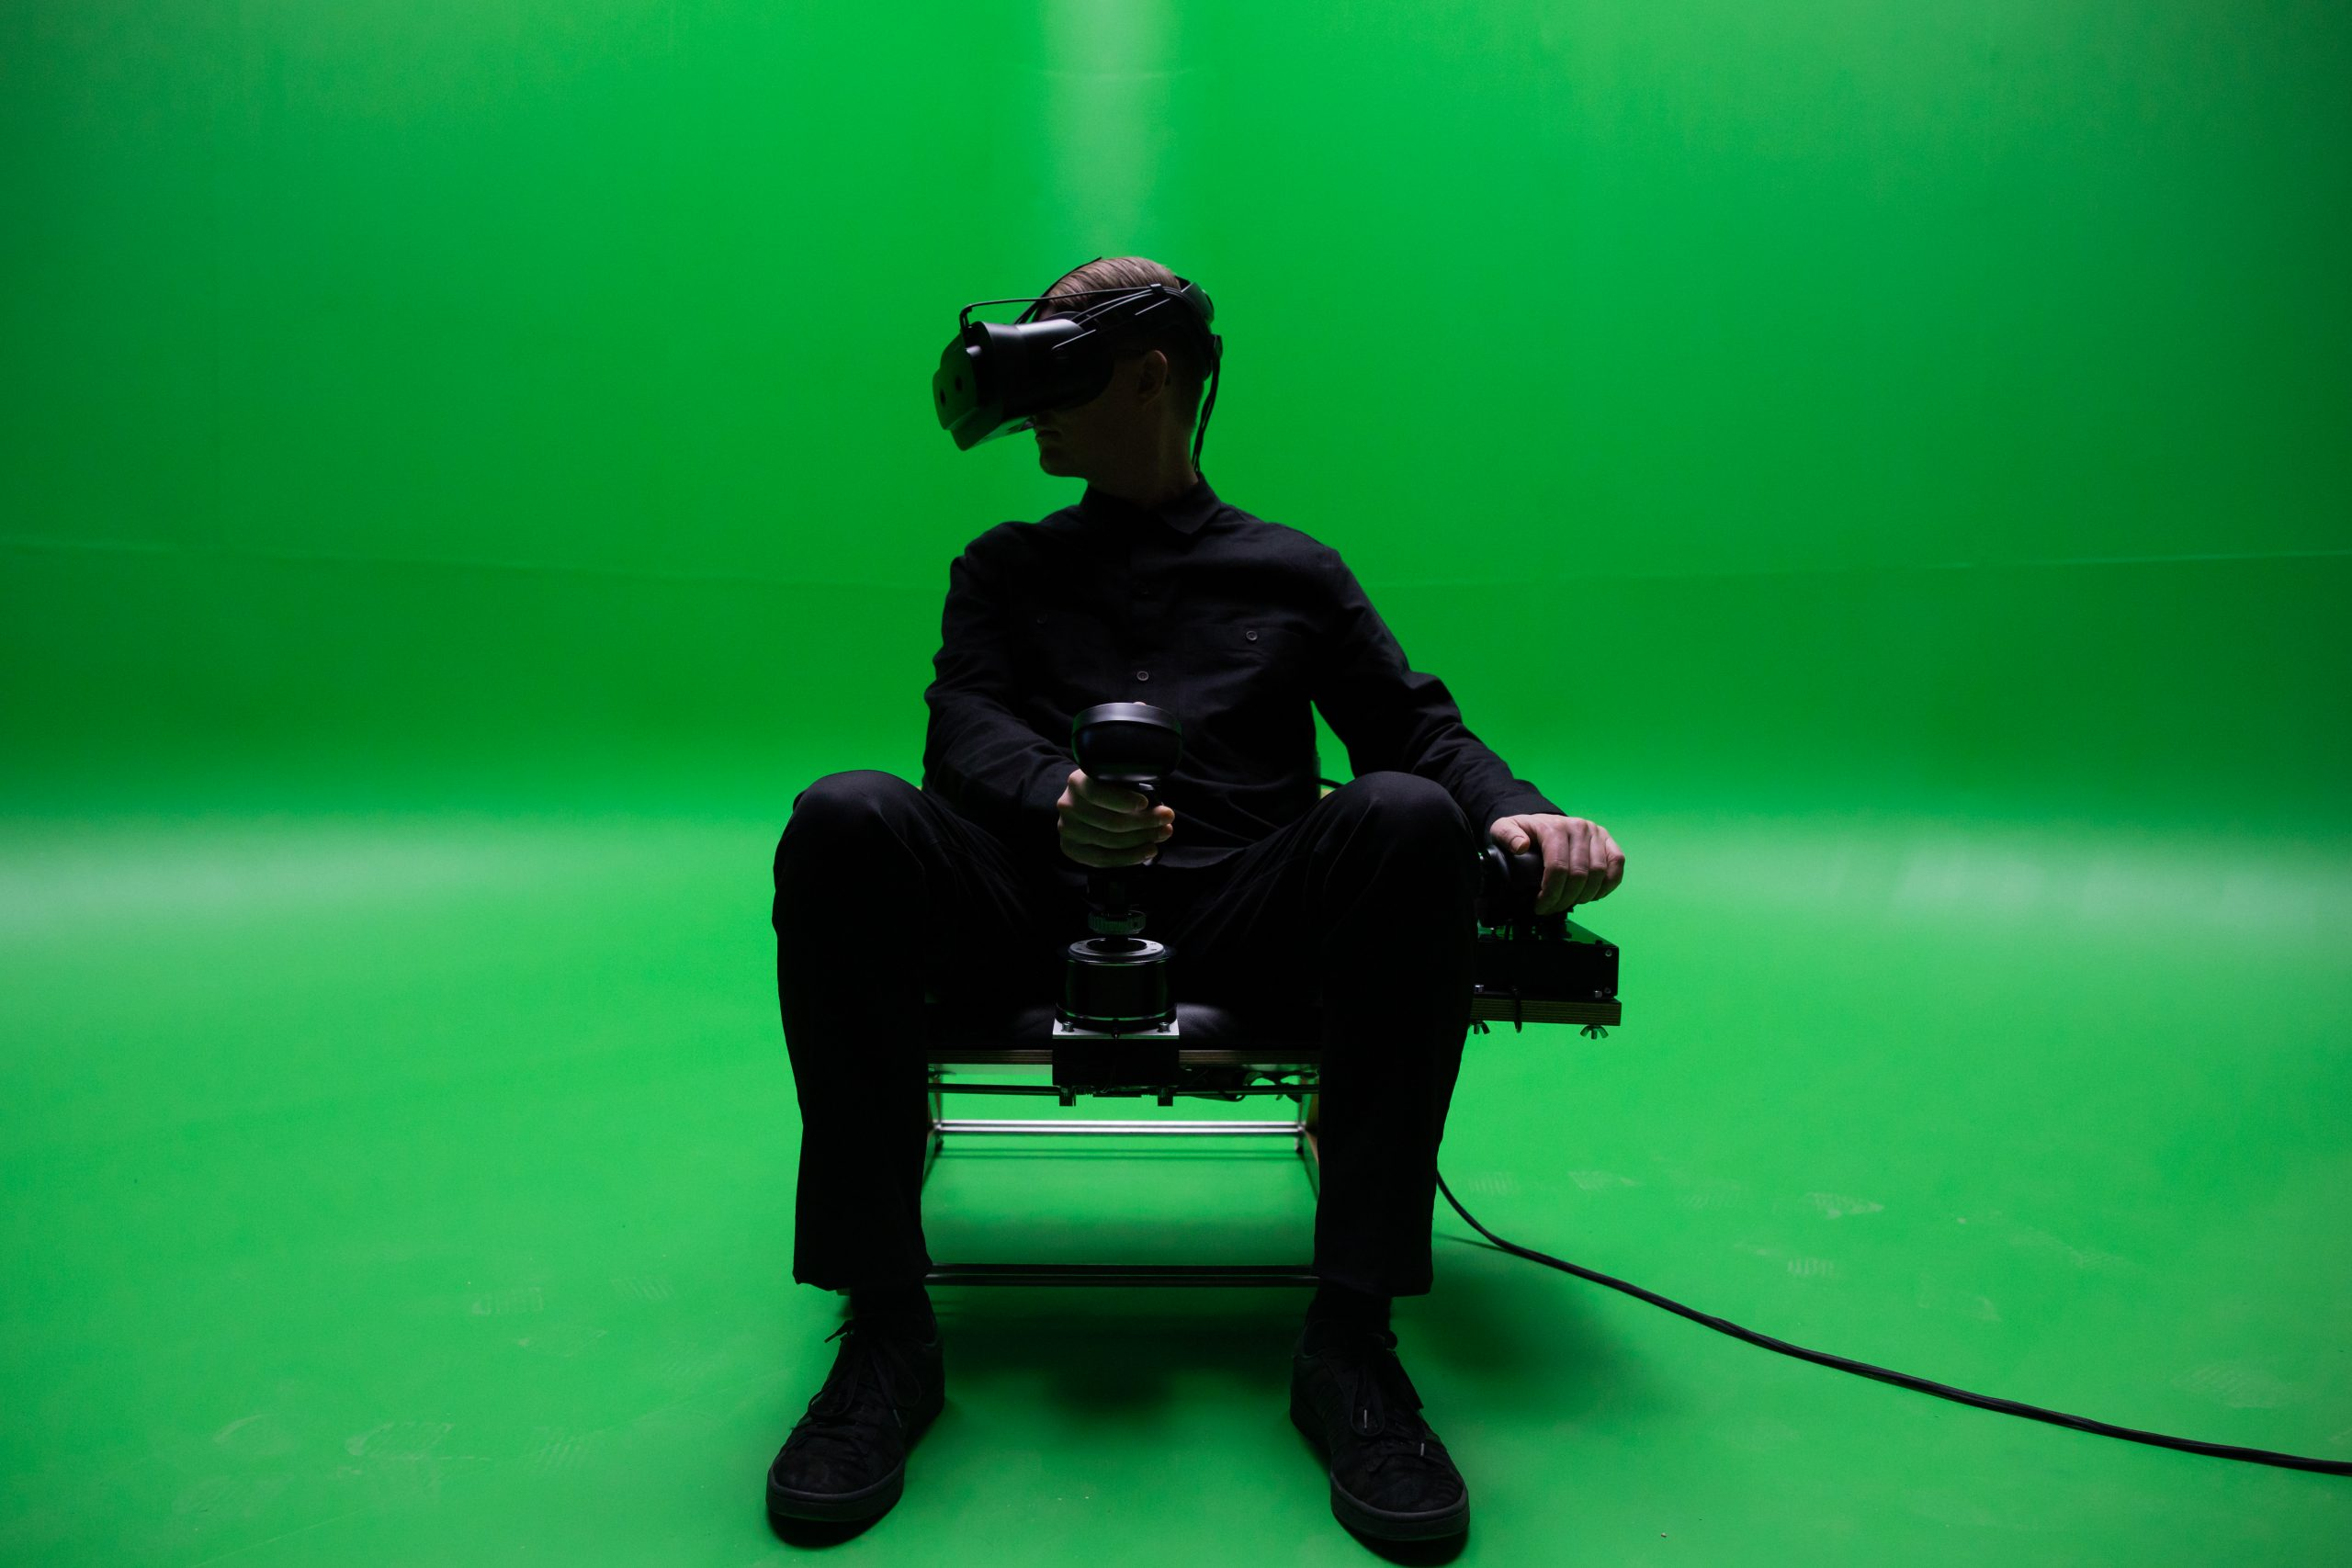 Varjo Delivers Absolute Immersion in Mixed Reality